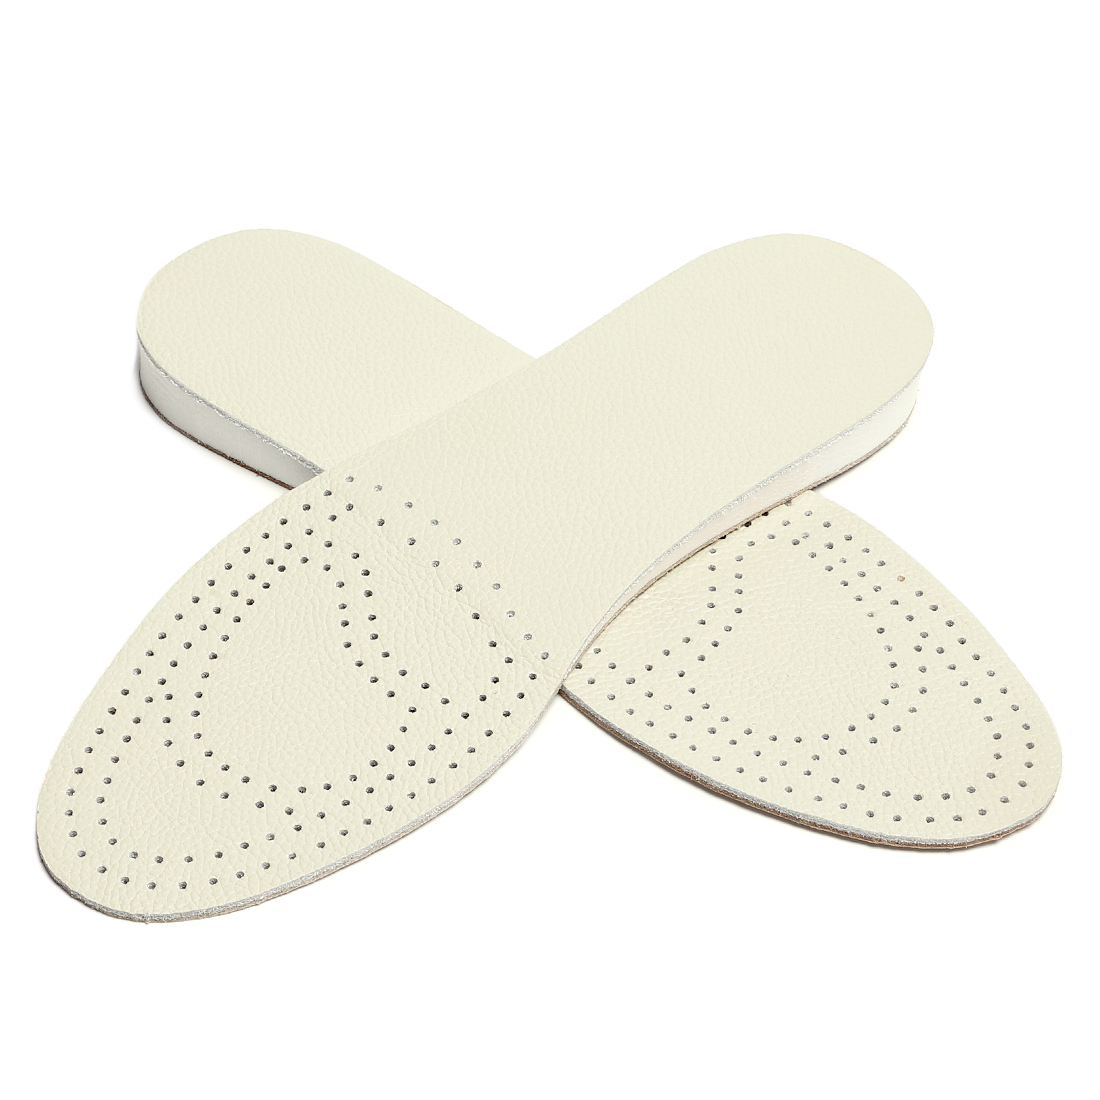 """Women Men Leather Insole Breathable Pad Height Increase W4/M2 5/8"""" High White"""